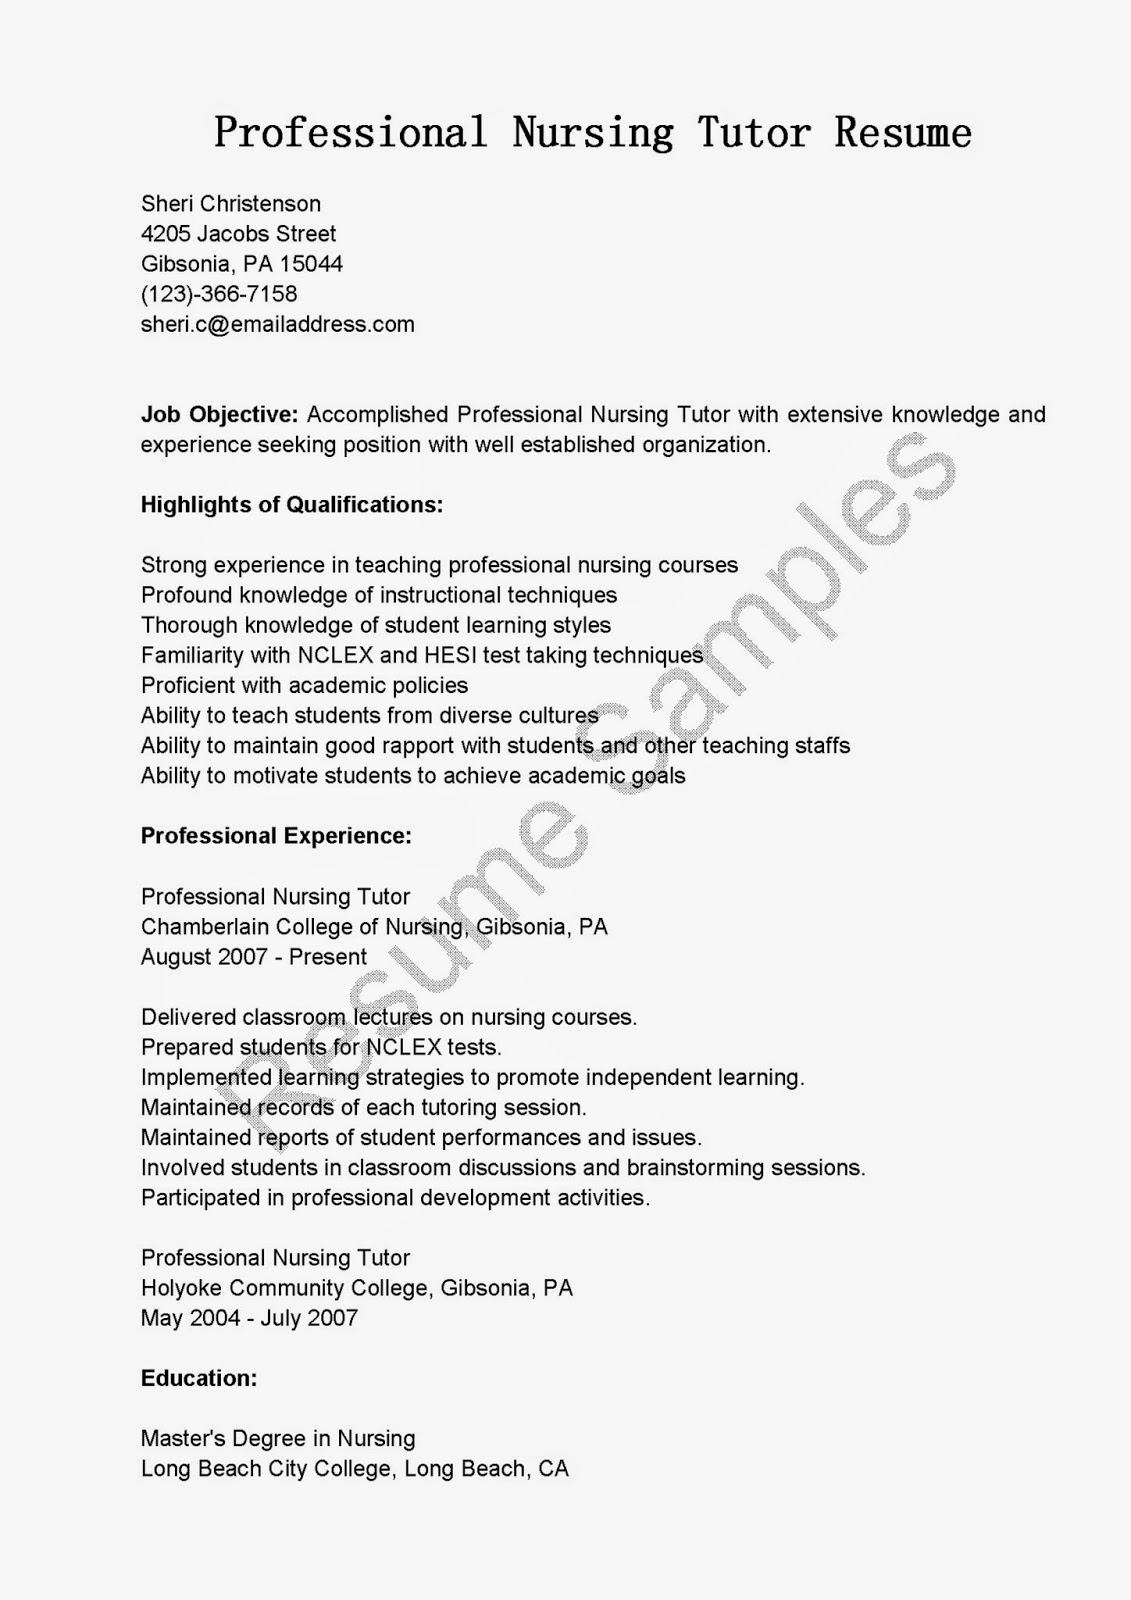 resume samples  professional nursing tutor resume sample